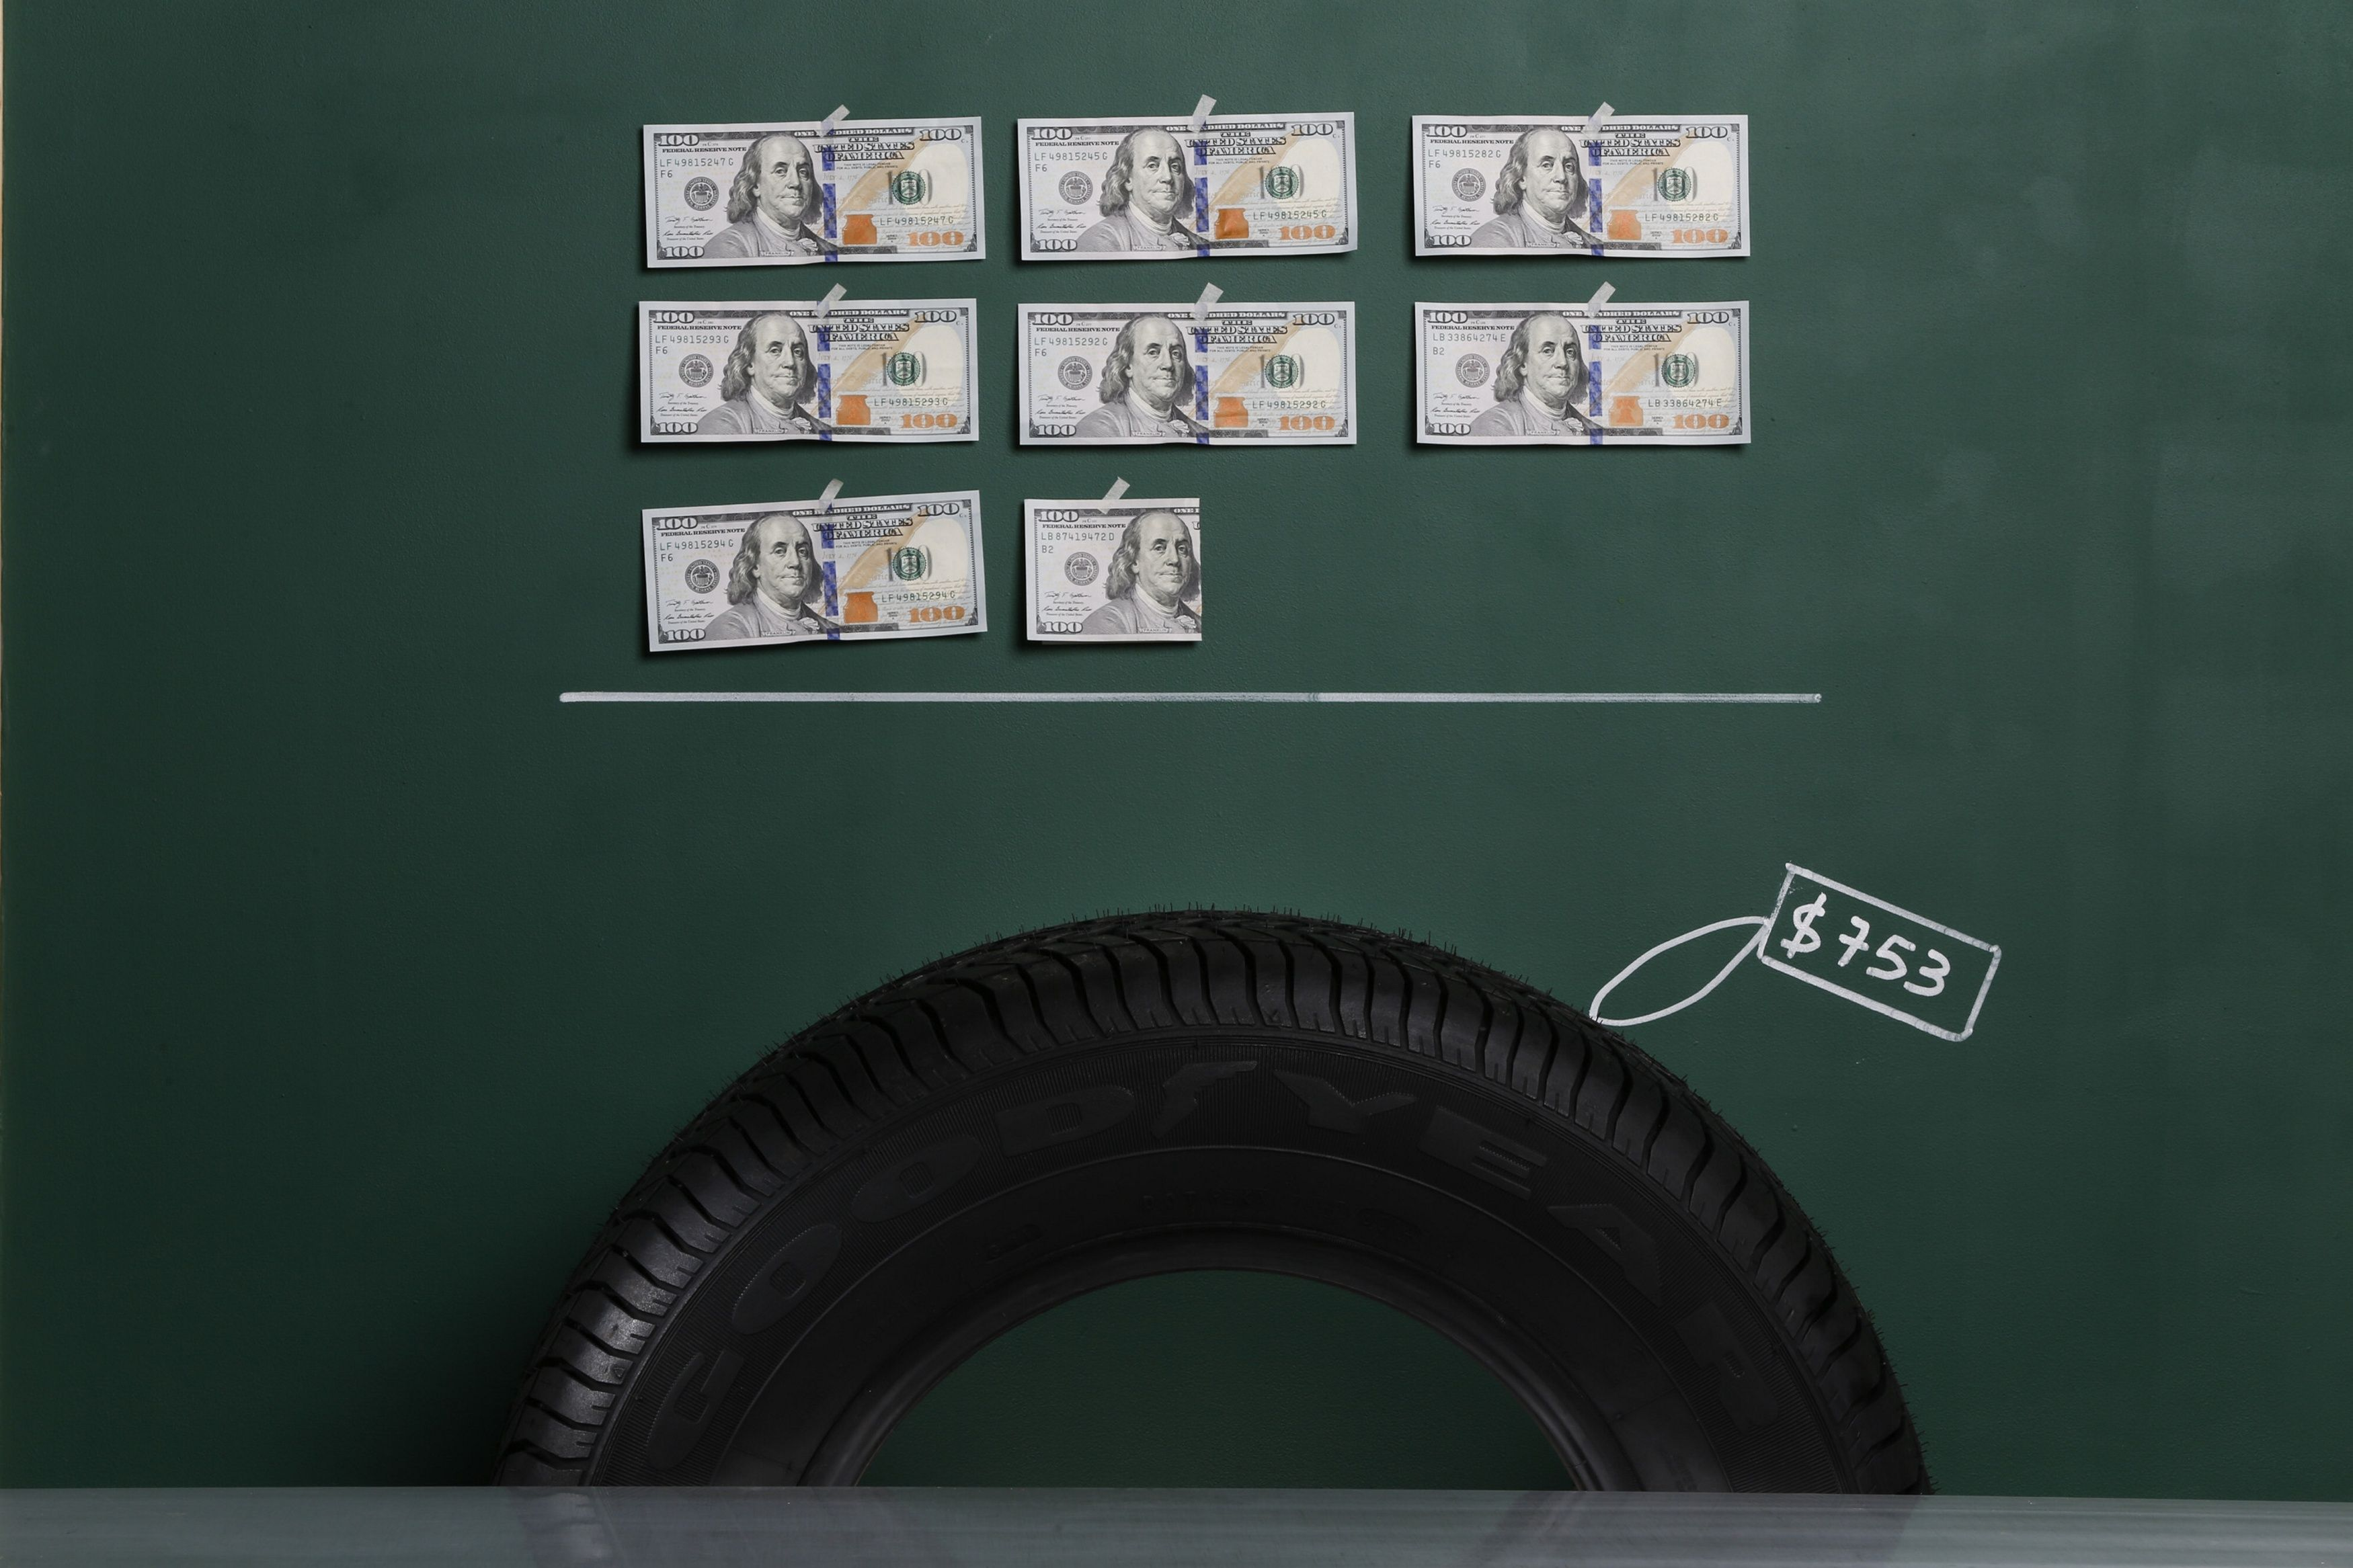 A Goodyear brand automobile tyre as photographed with an illustrative price tag of $753 in Caracas